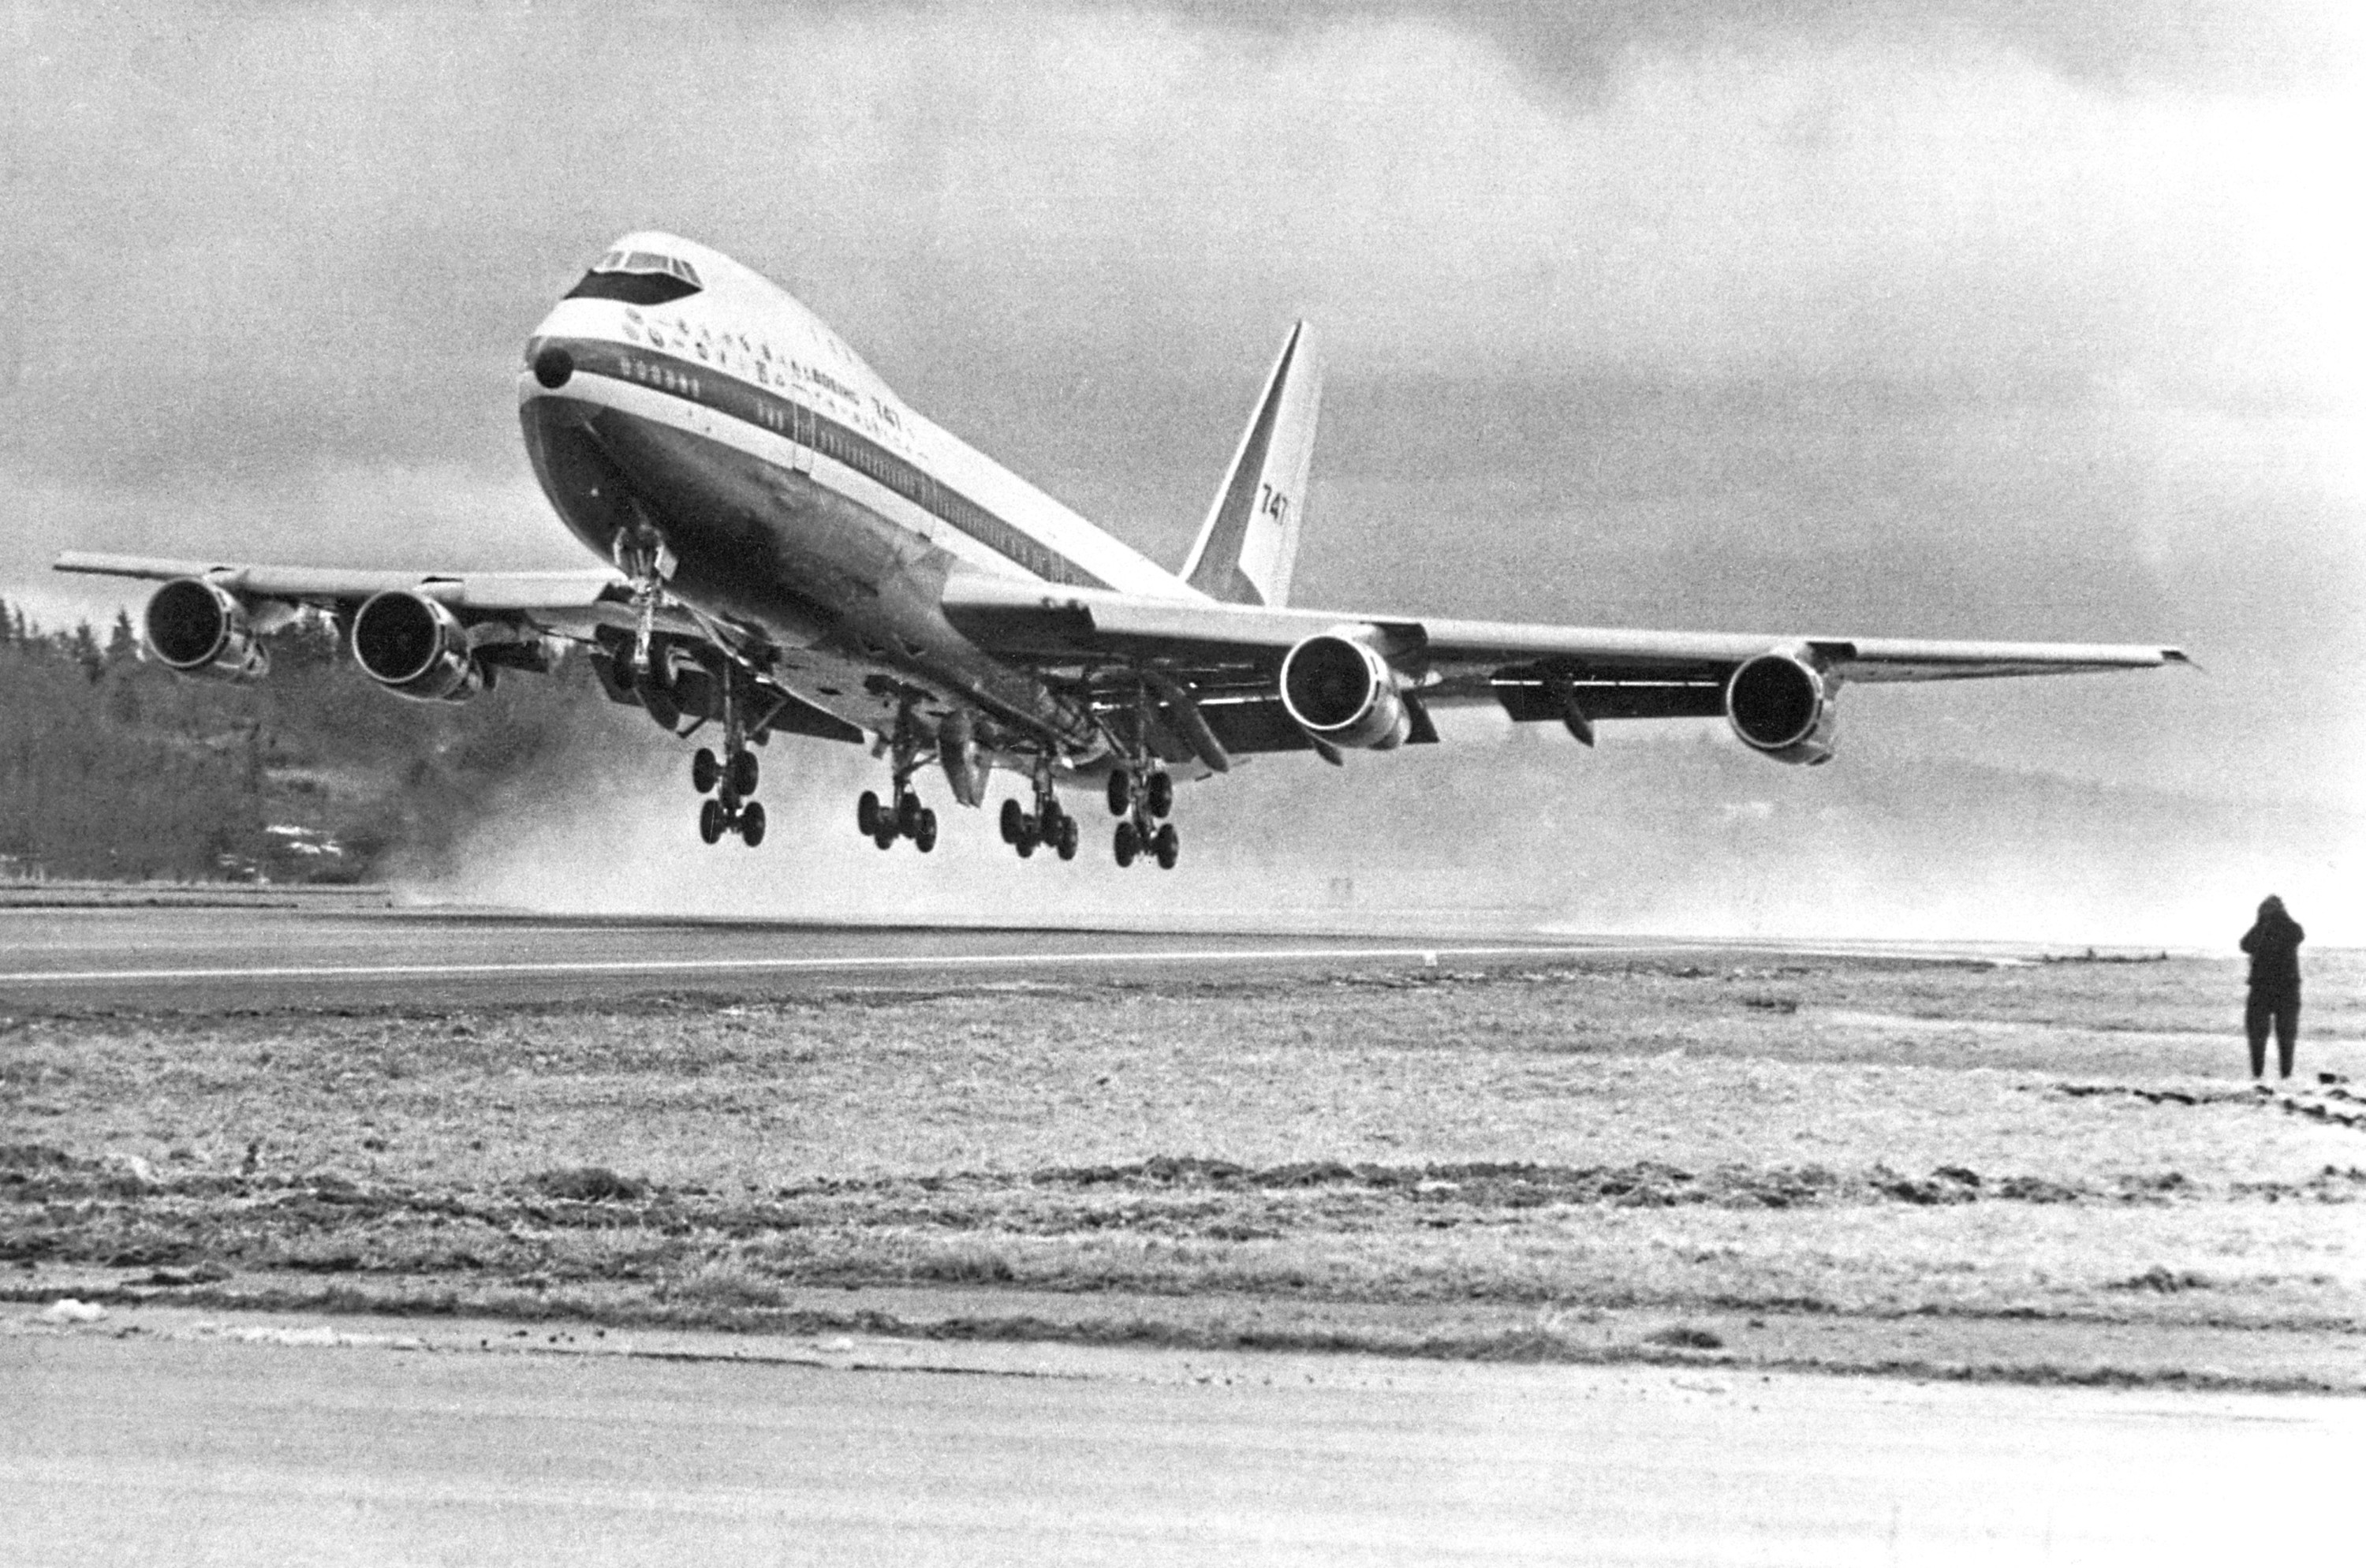 The Boeing 747 makes its first takeoff near Washington DC